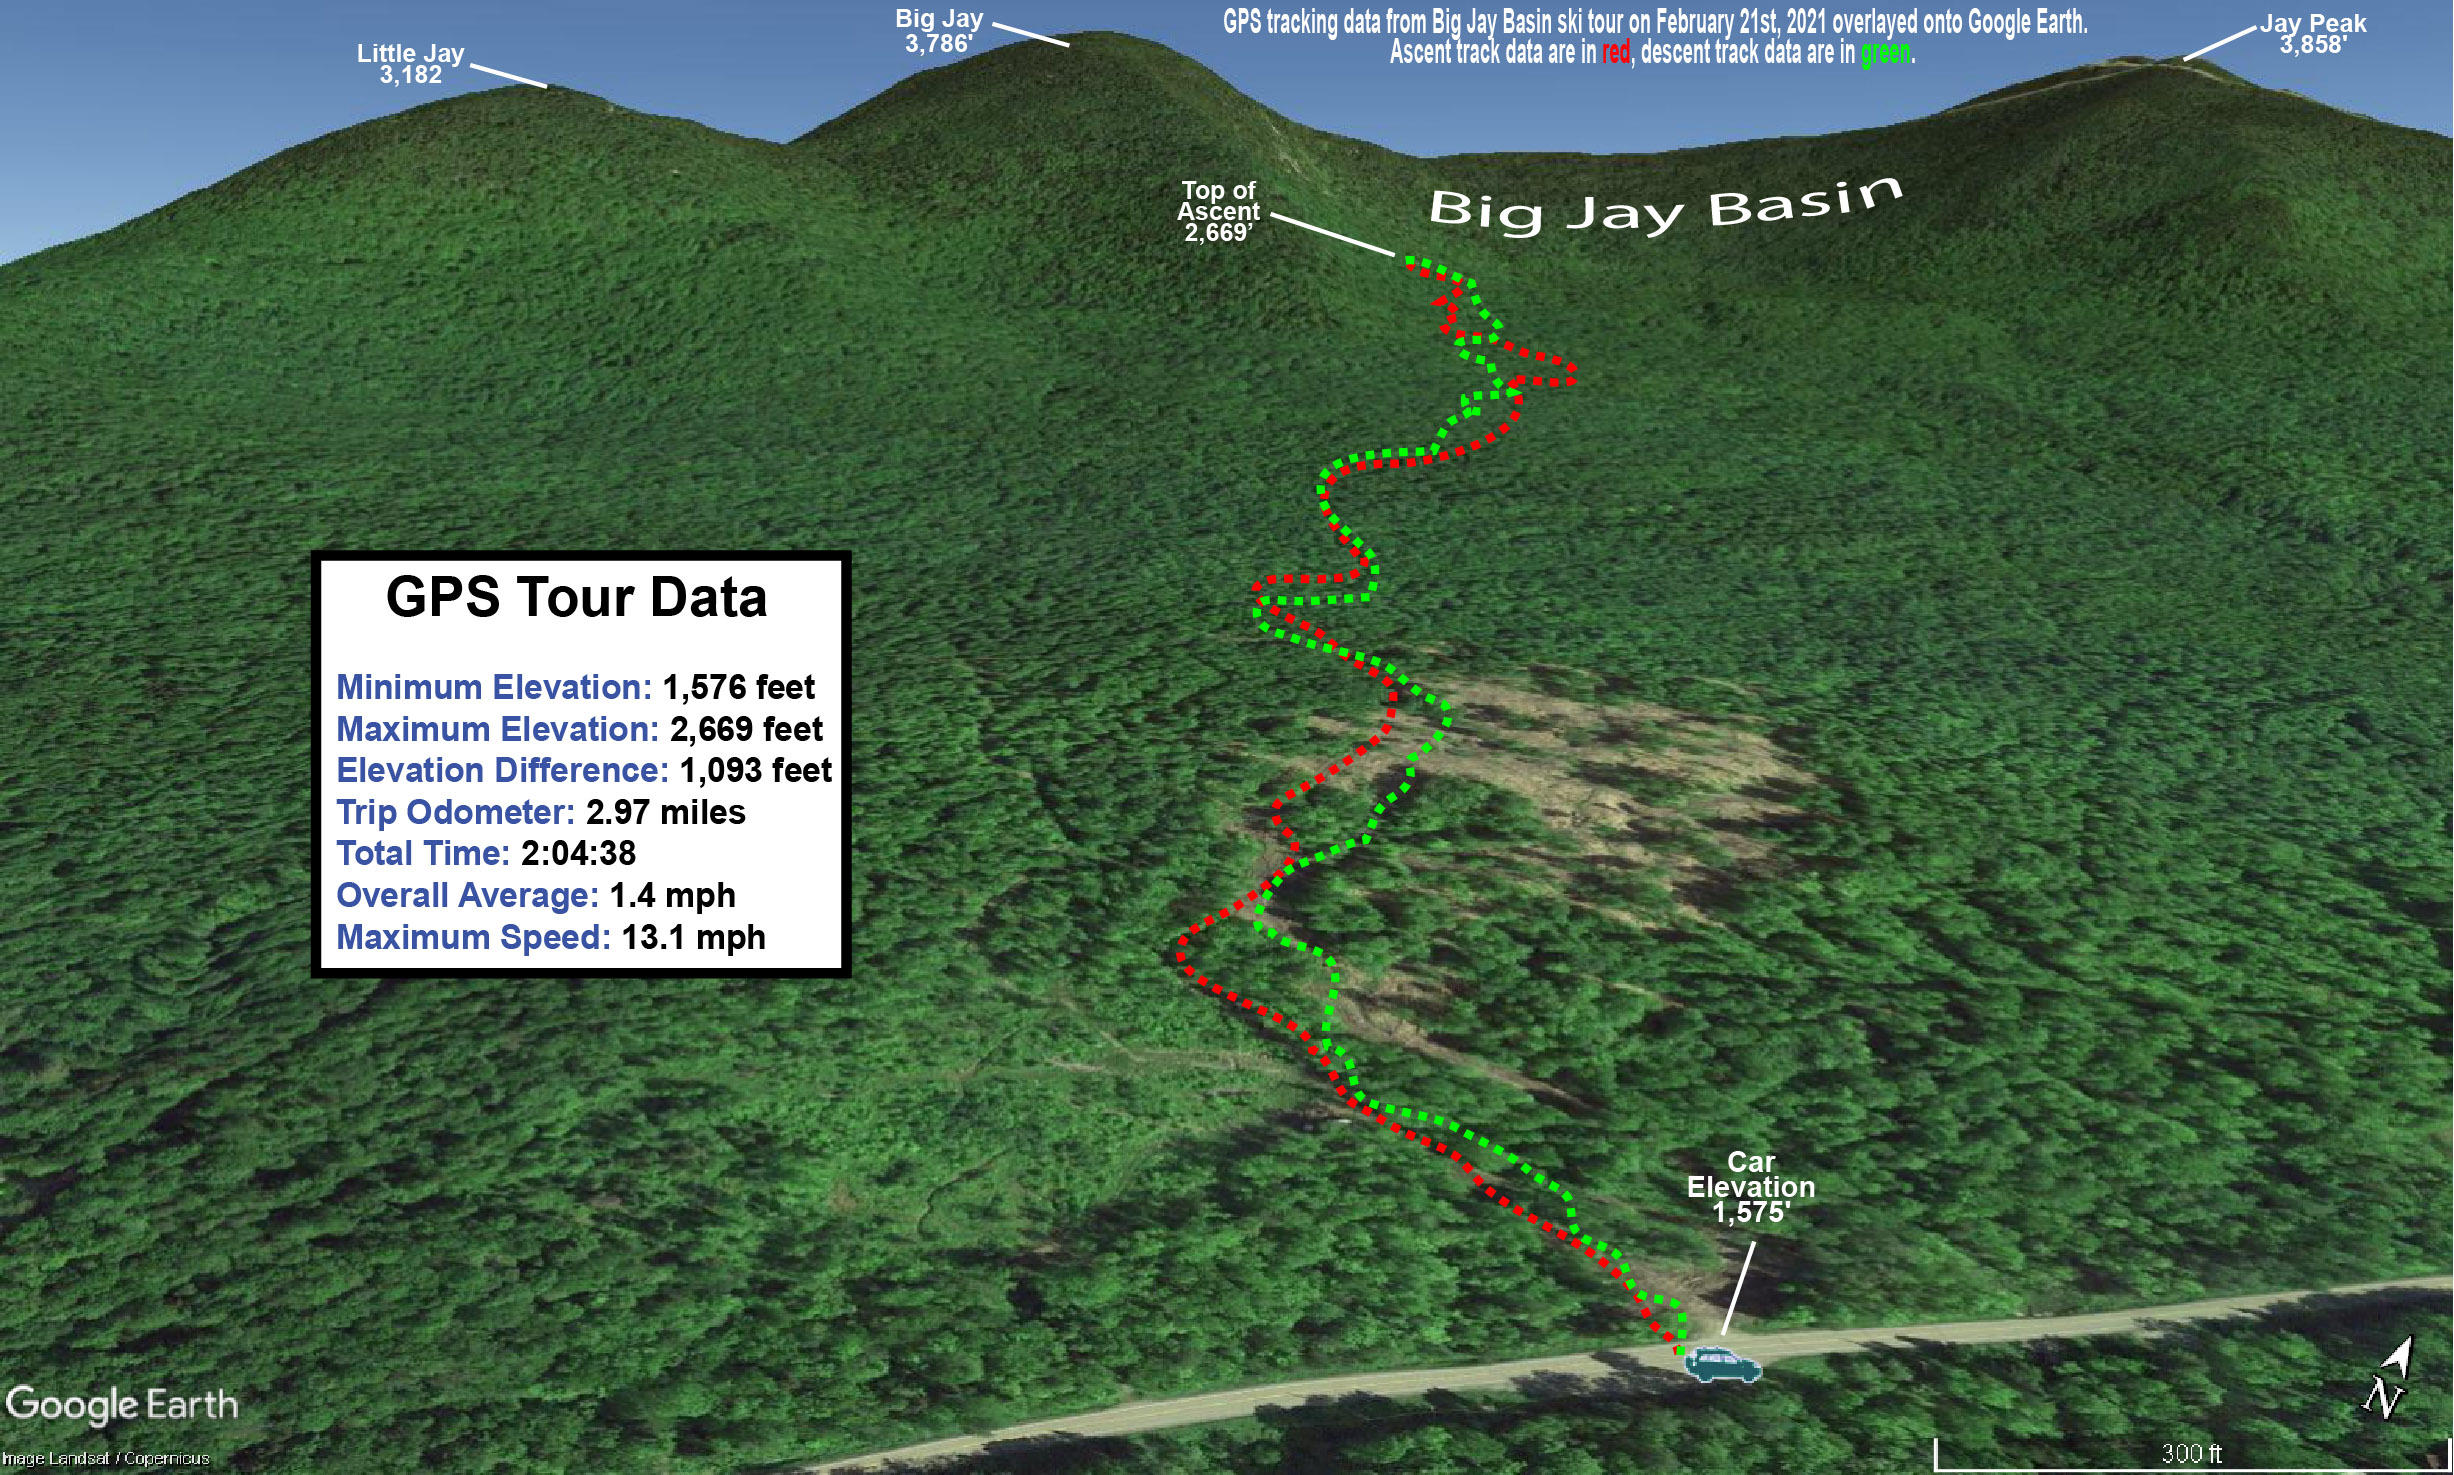 A map showing GPS data on Google Earth for a backcountry ski tour in the Big Jay Basin area near Jay Peak Resort in Vermont